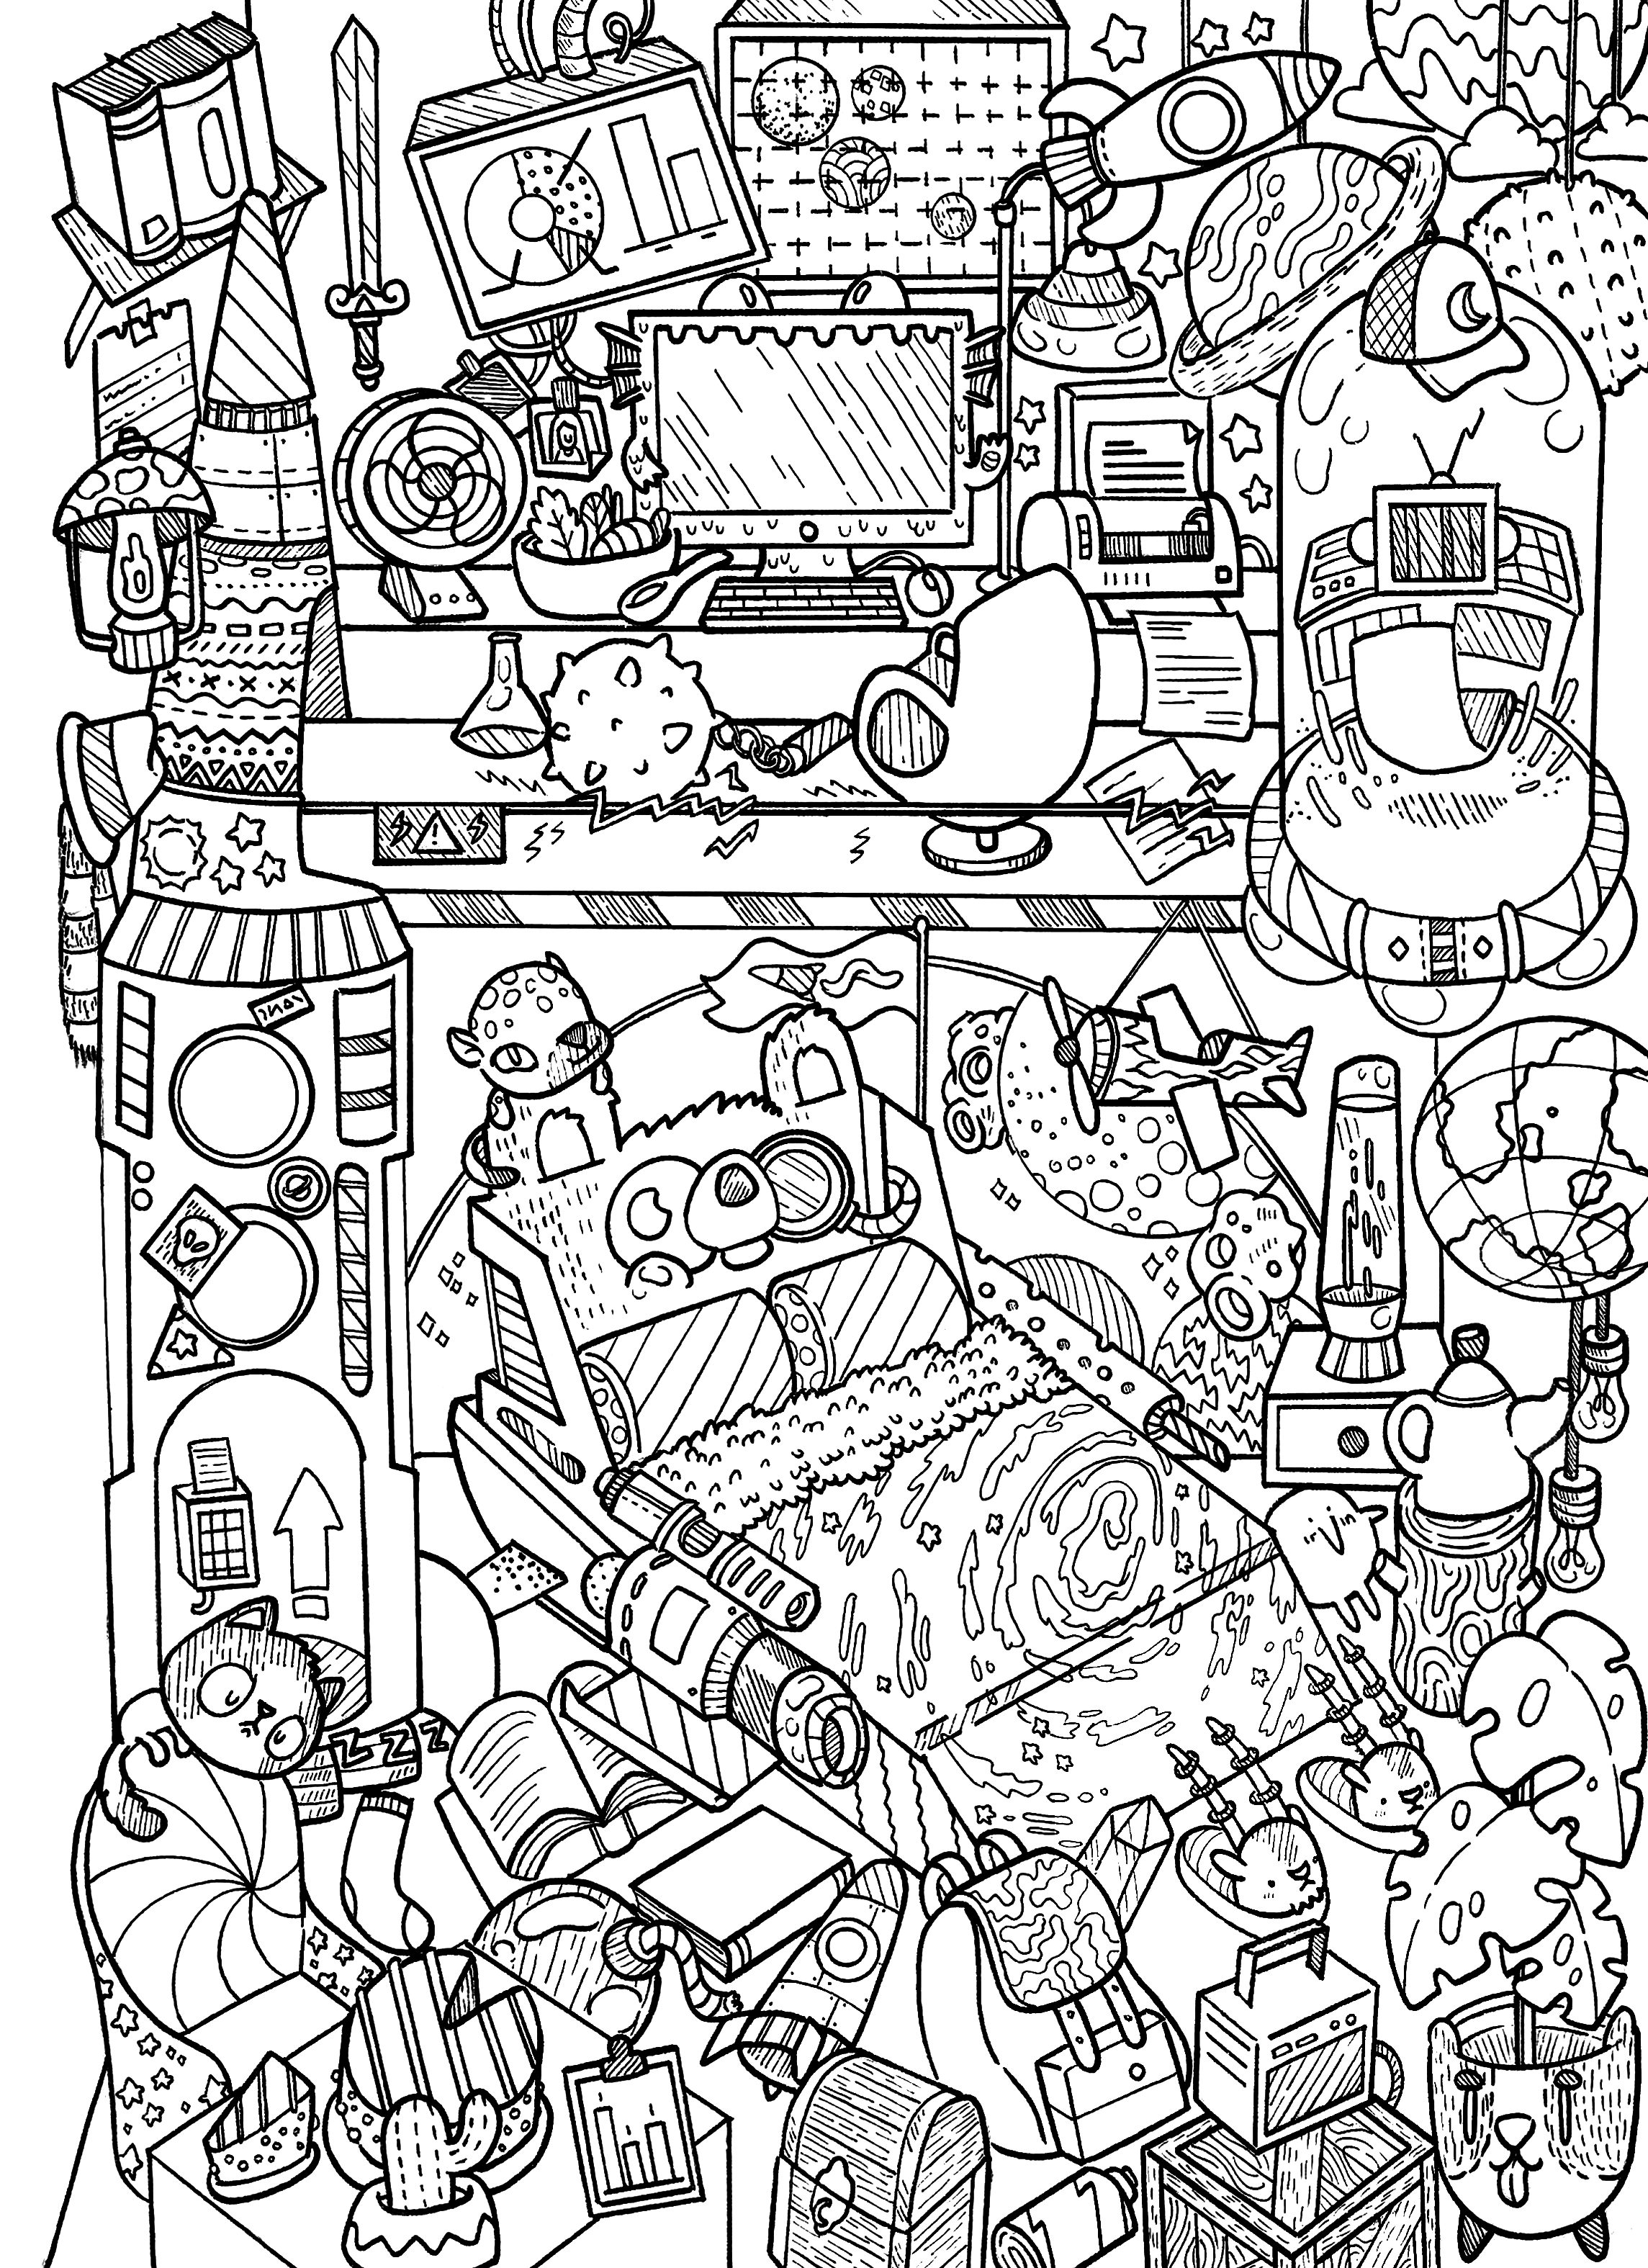 2289x3150 Doodles In Outer Space Doodle Illustrations Outer